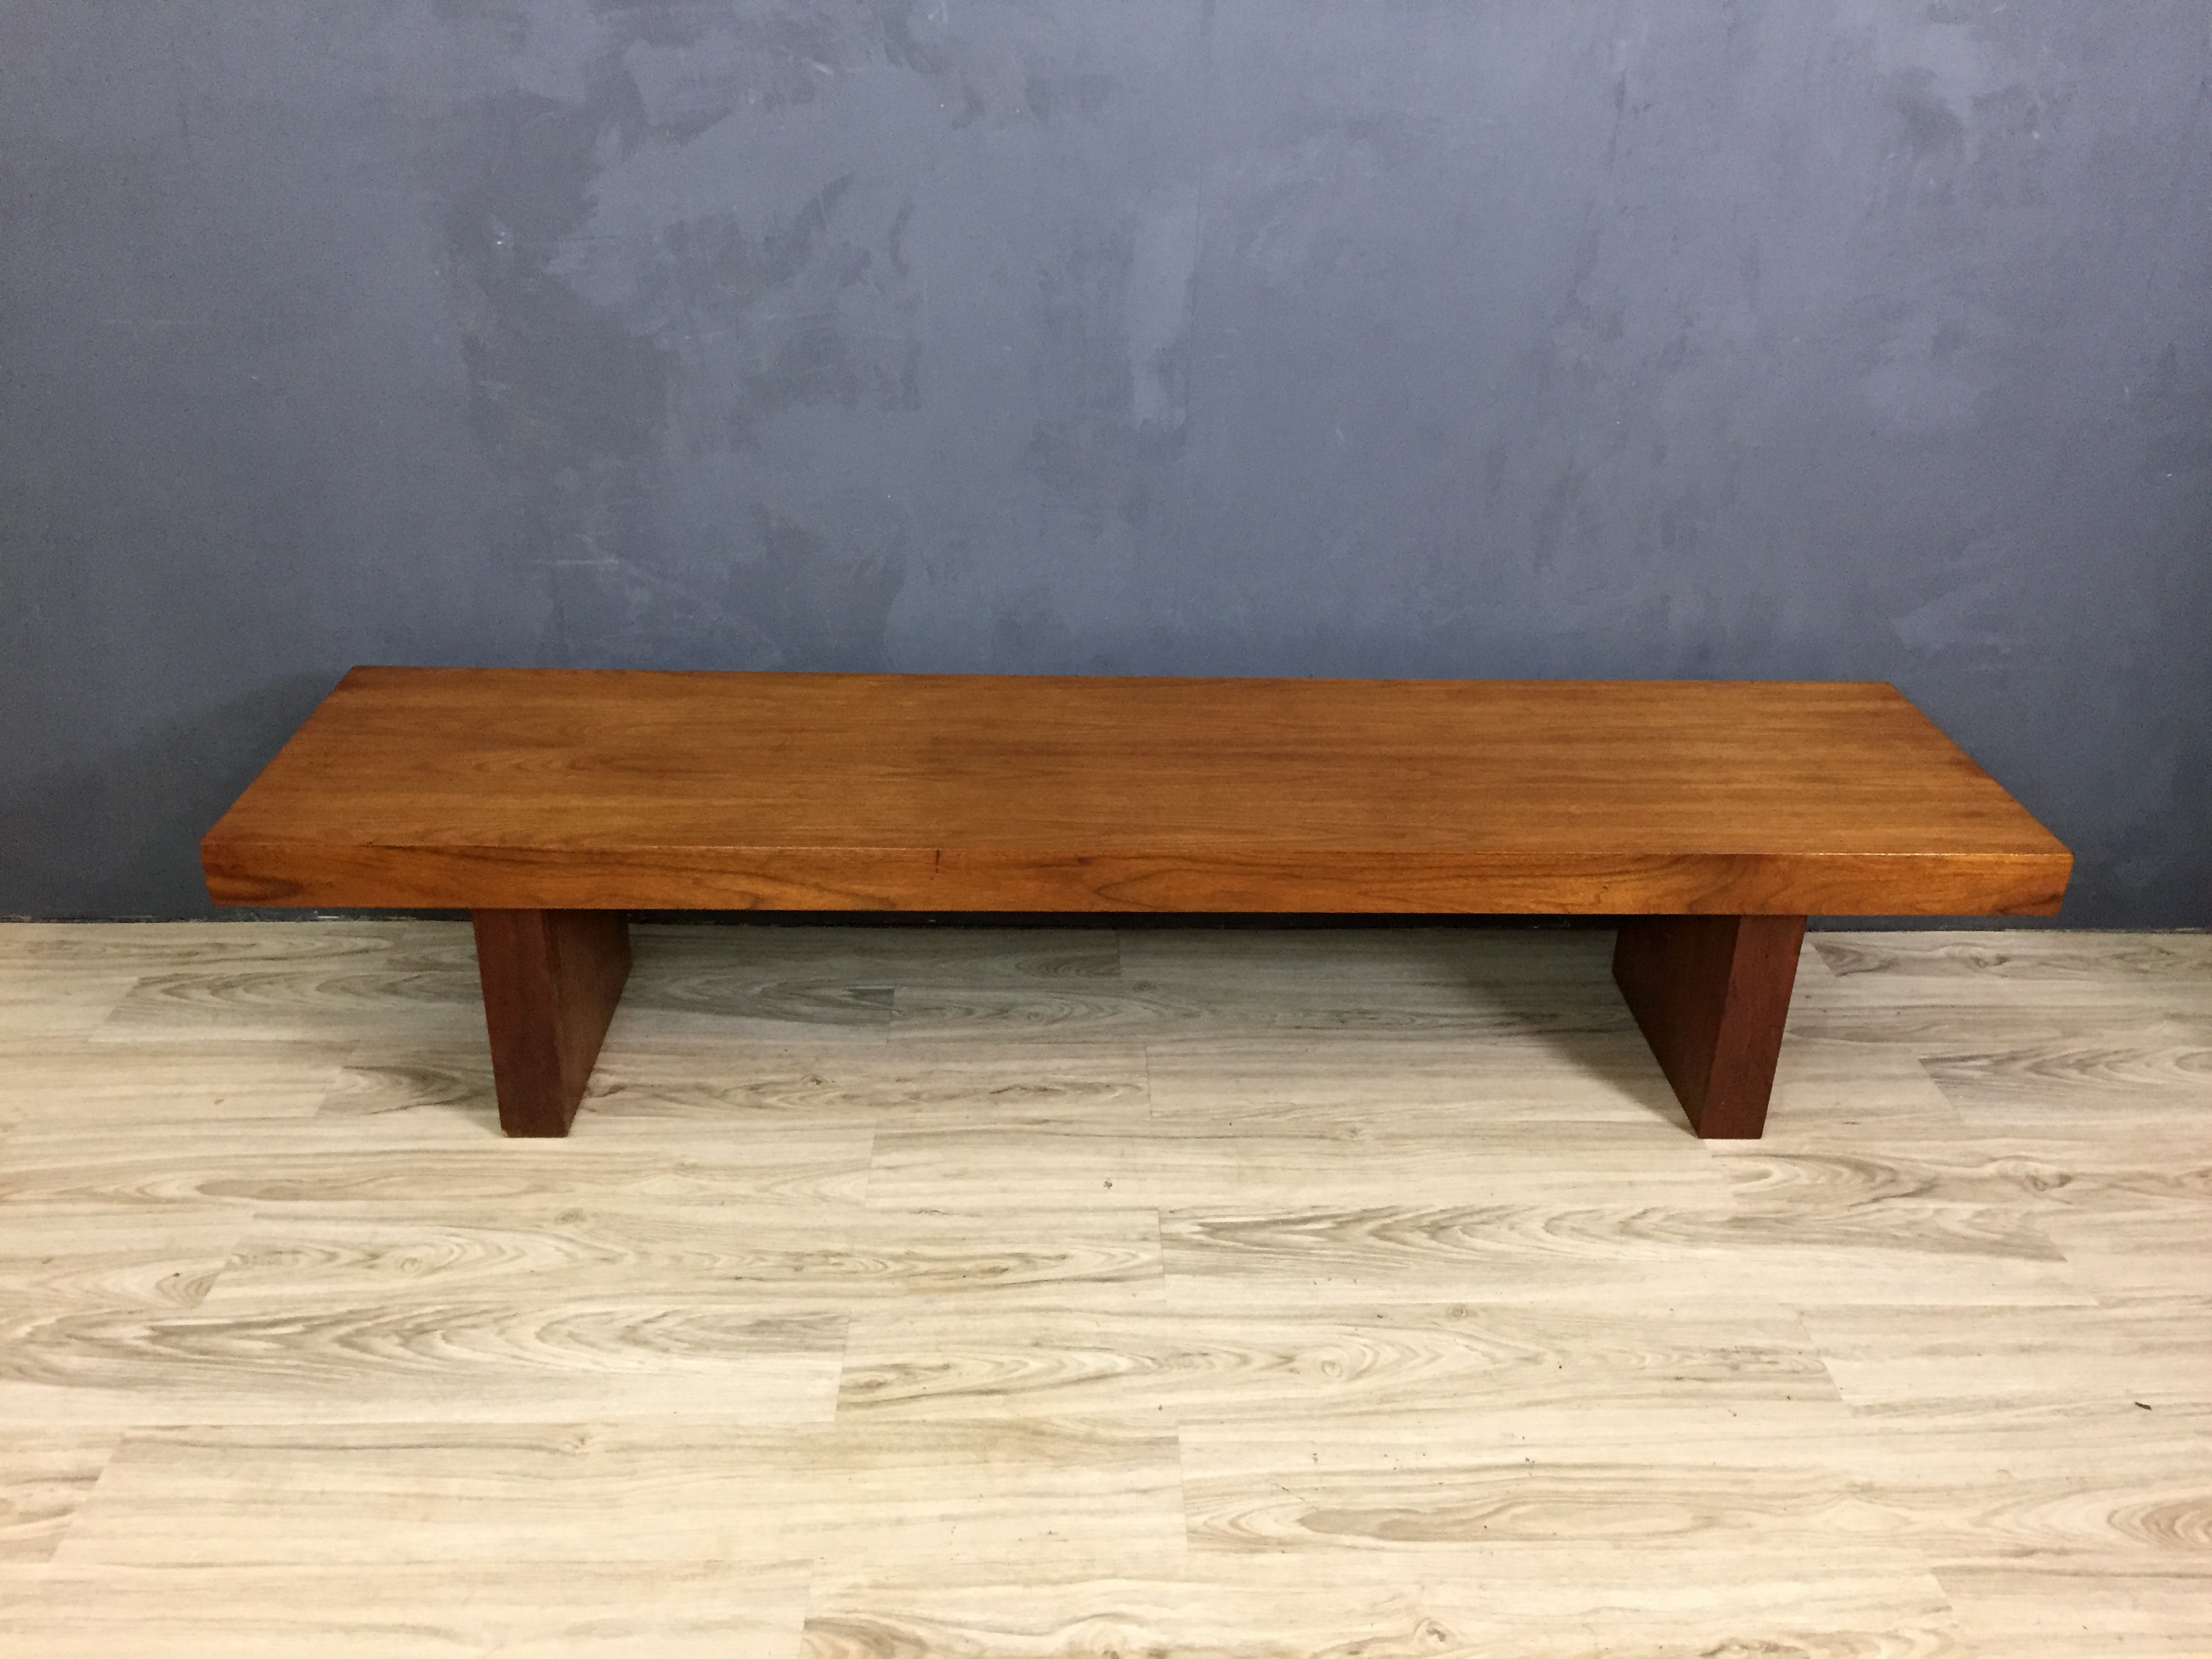 Walnut Coffee Table or Bench